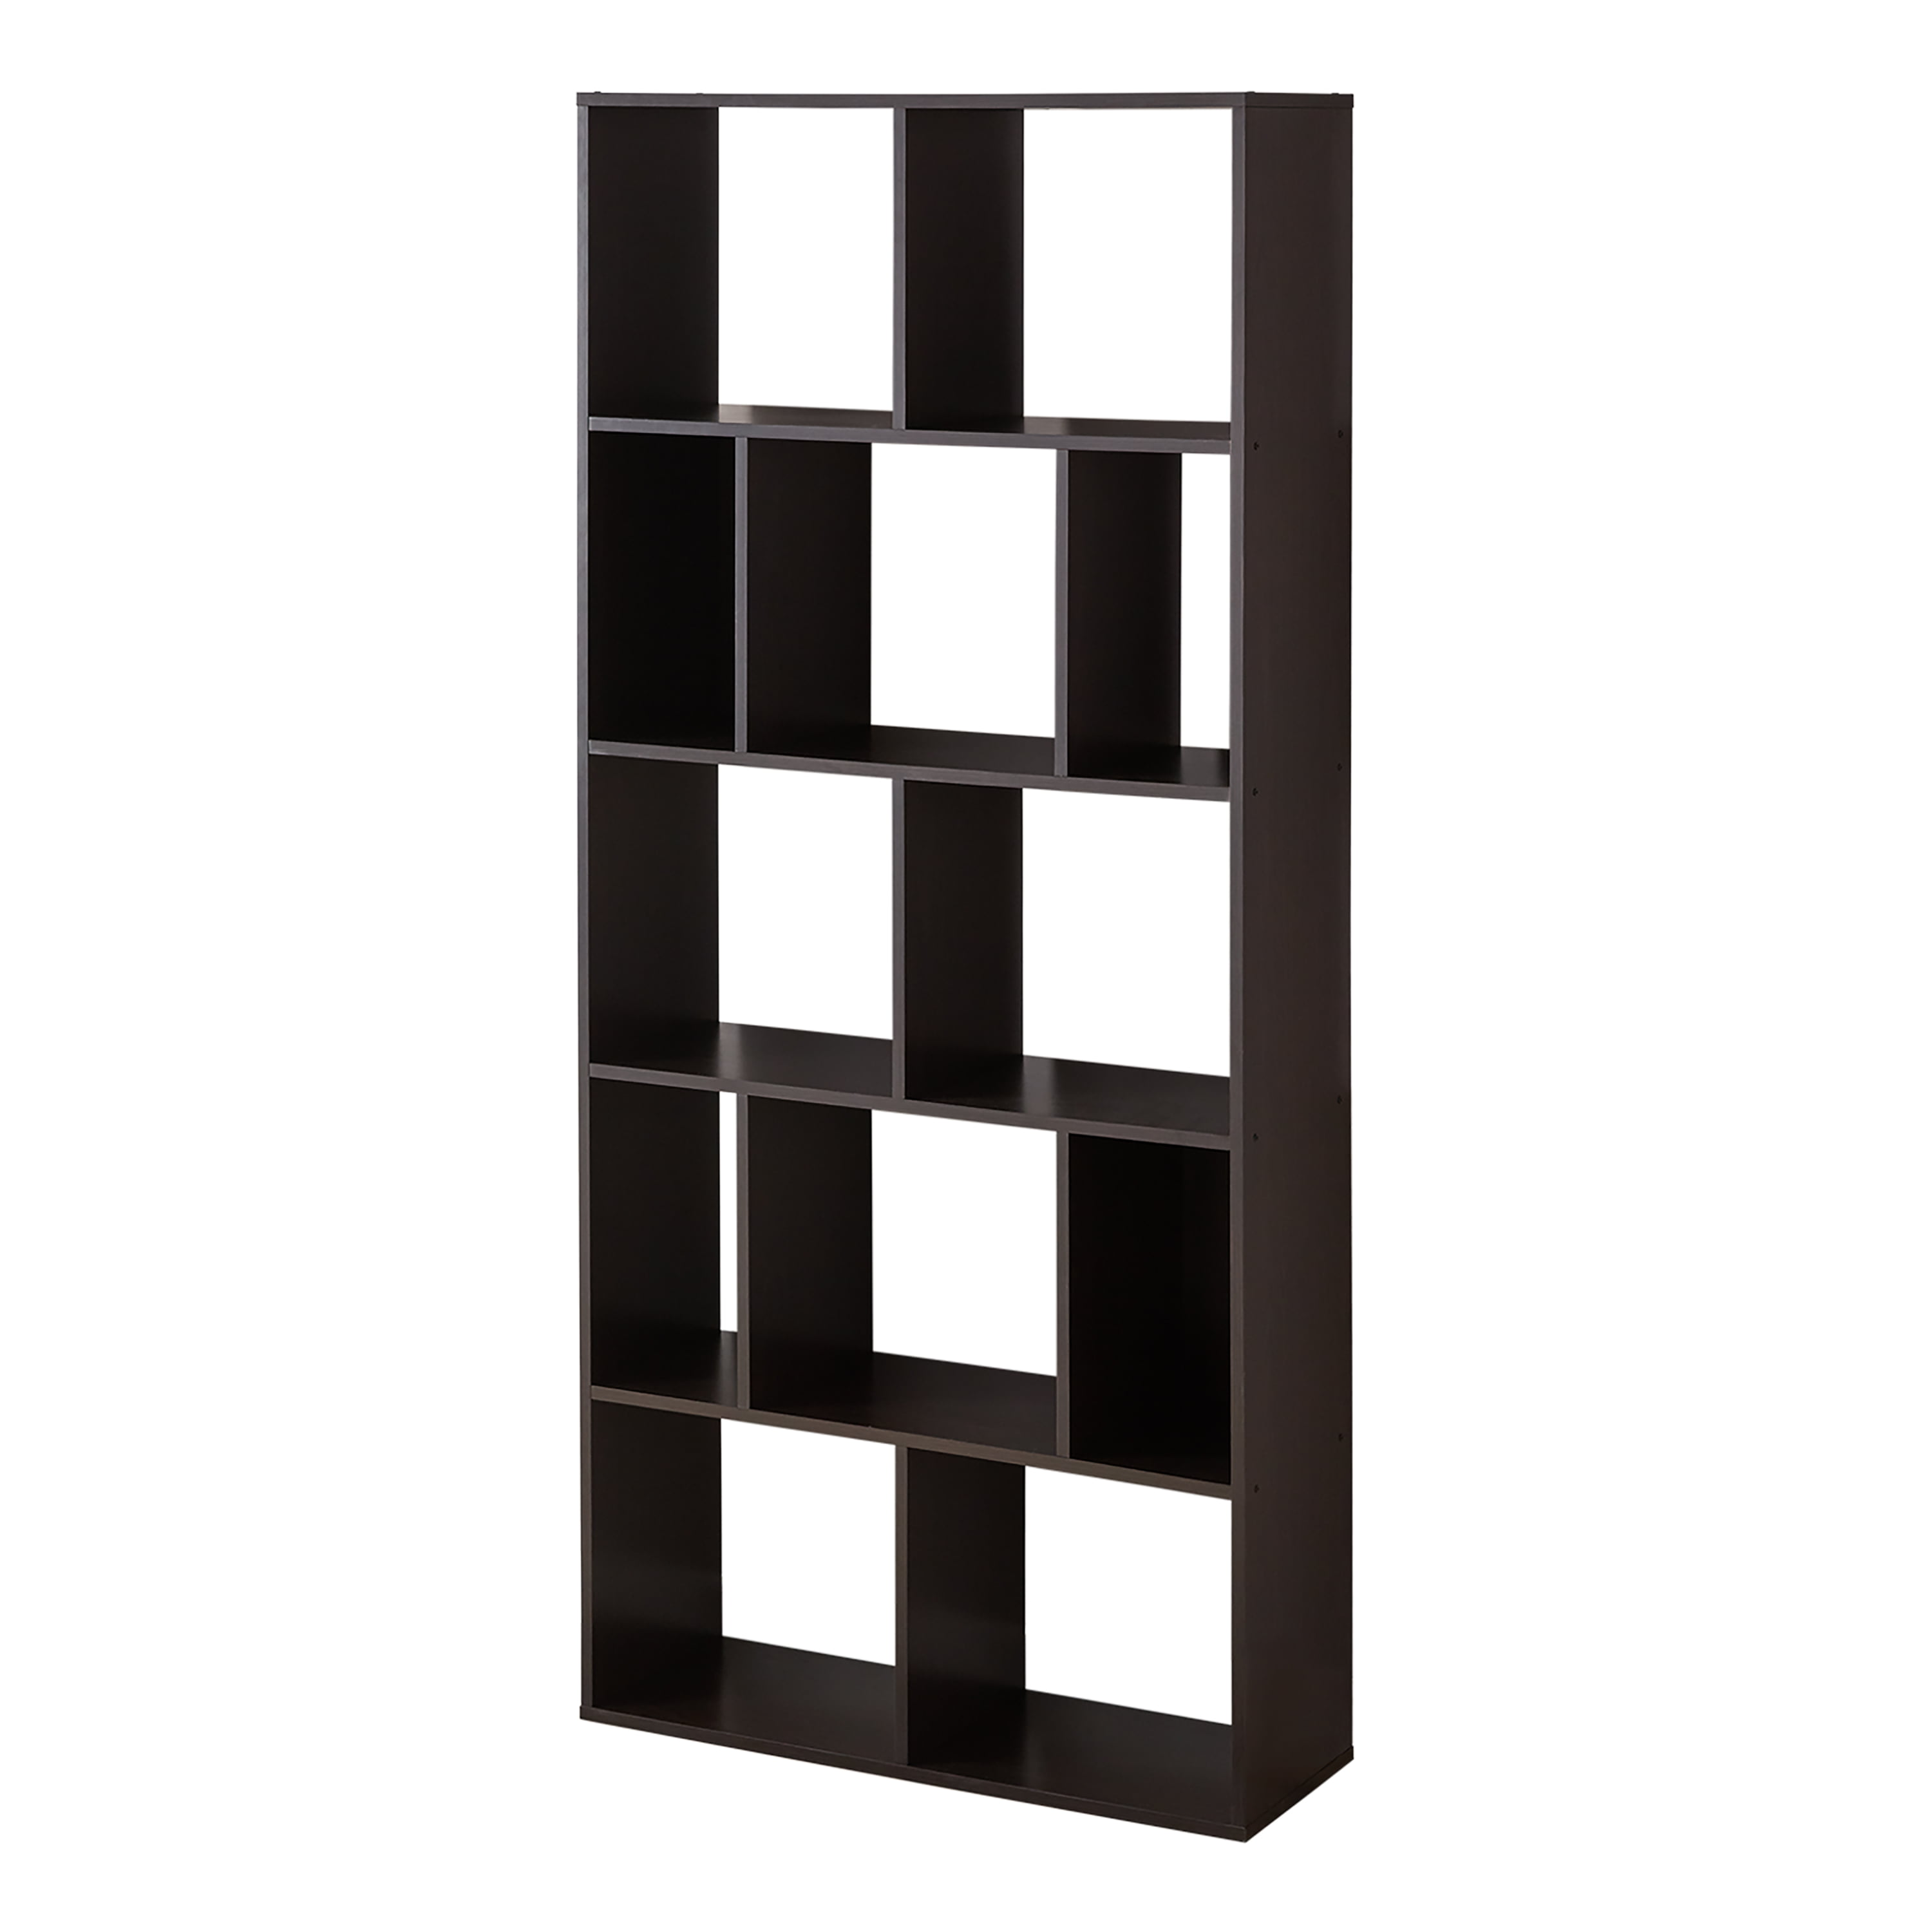 Mainstays 12 Cube Square Shelf Bookcase Black